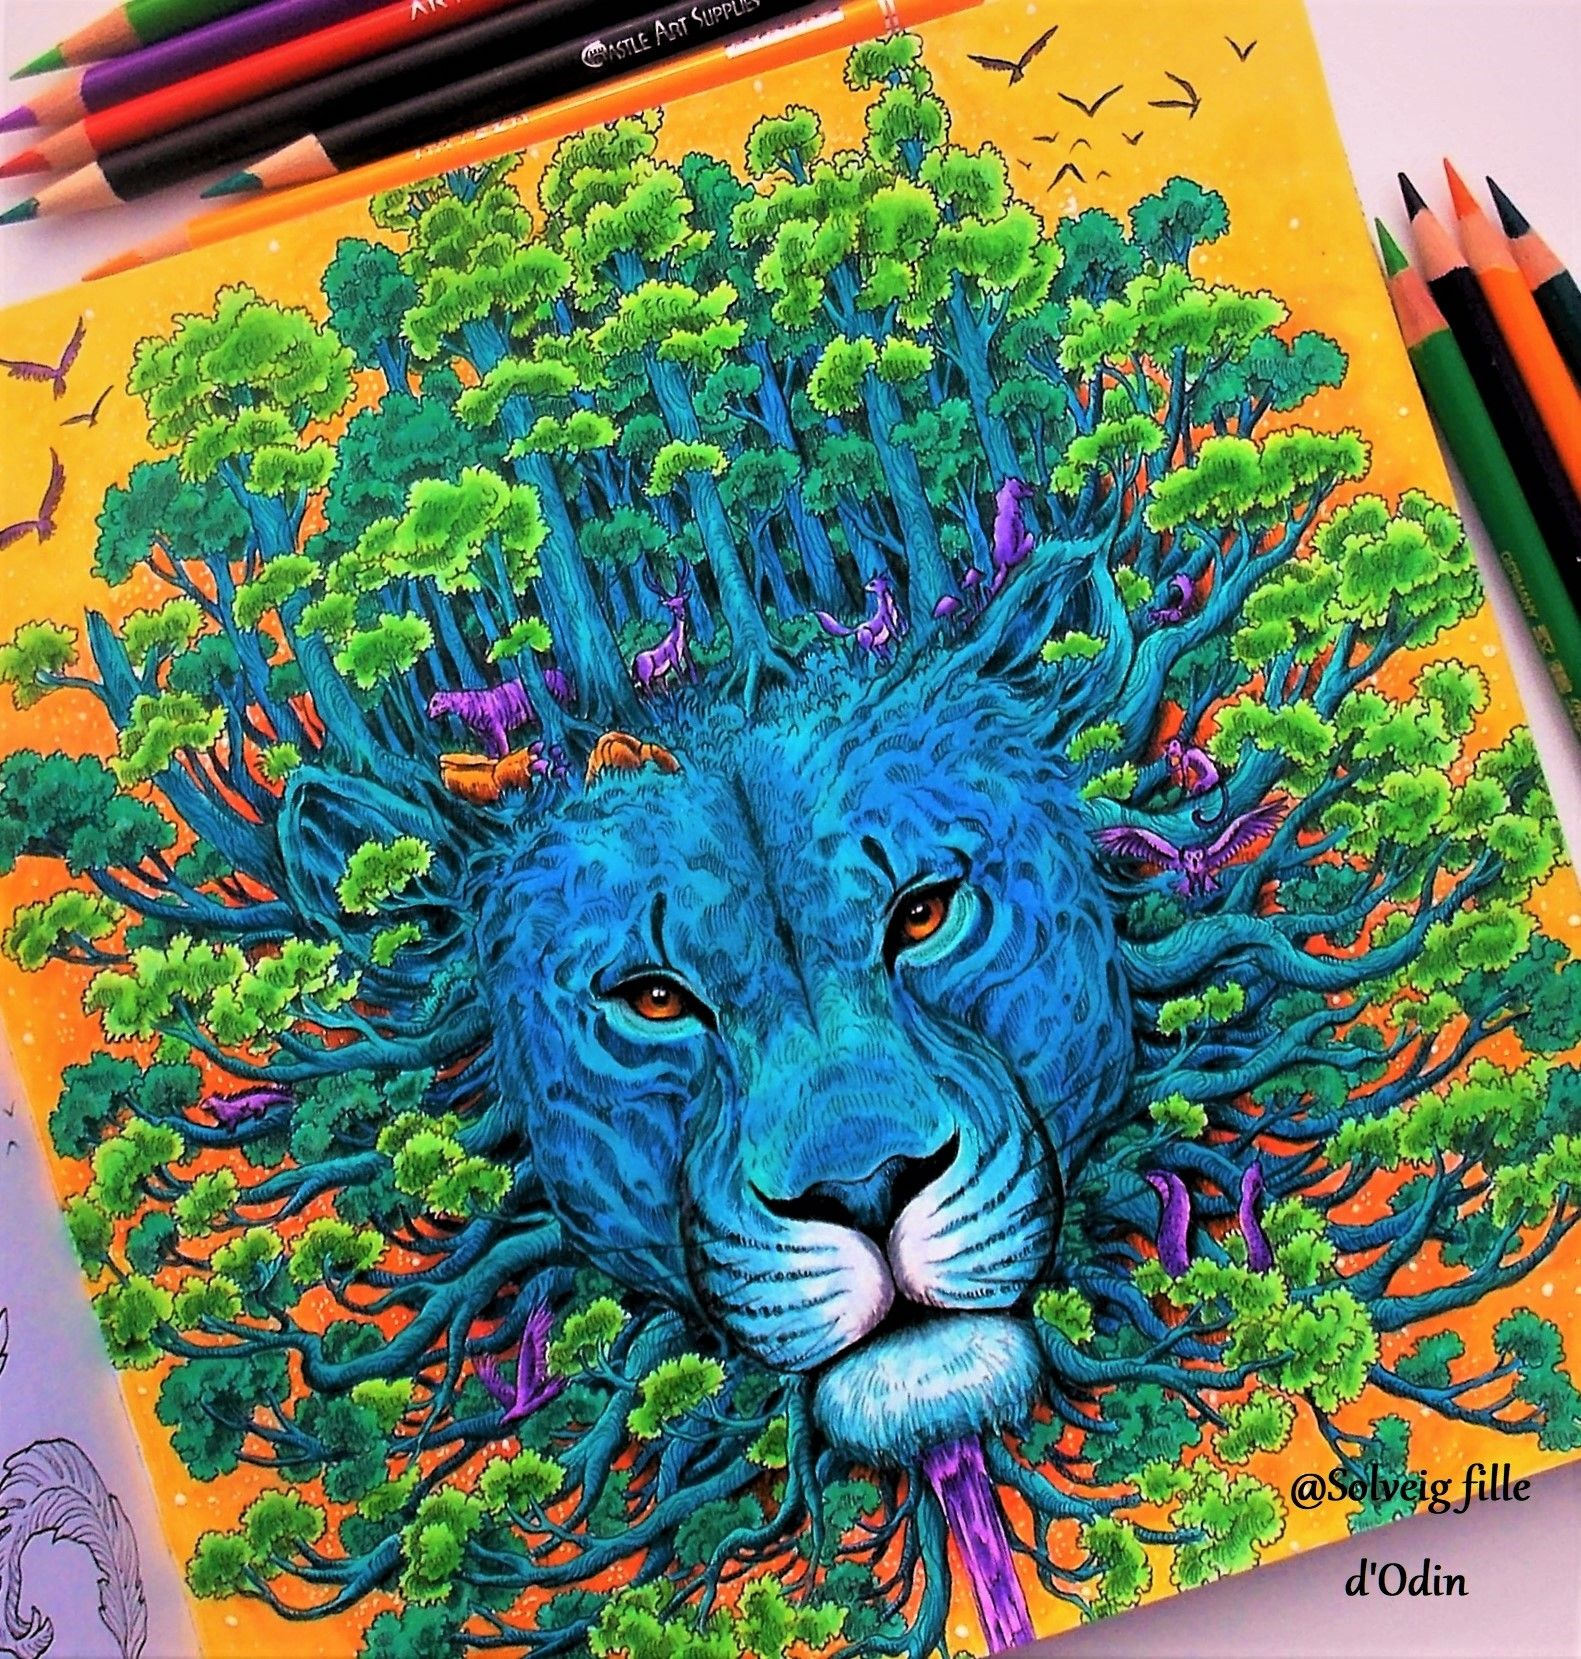 Kerby Rosanes Coloring By Solveig Fille D Odin Worldswithinworlds Kerbyrosanes Kerbyrosaneswo Color Drawing Art Animorphia Coloring Book Animorphia Coloring